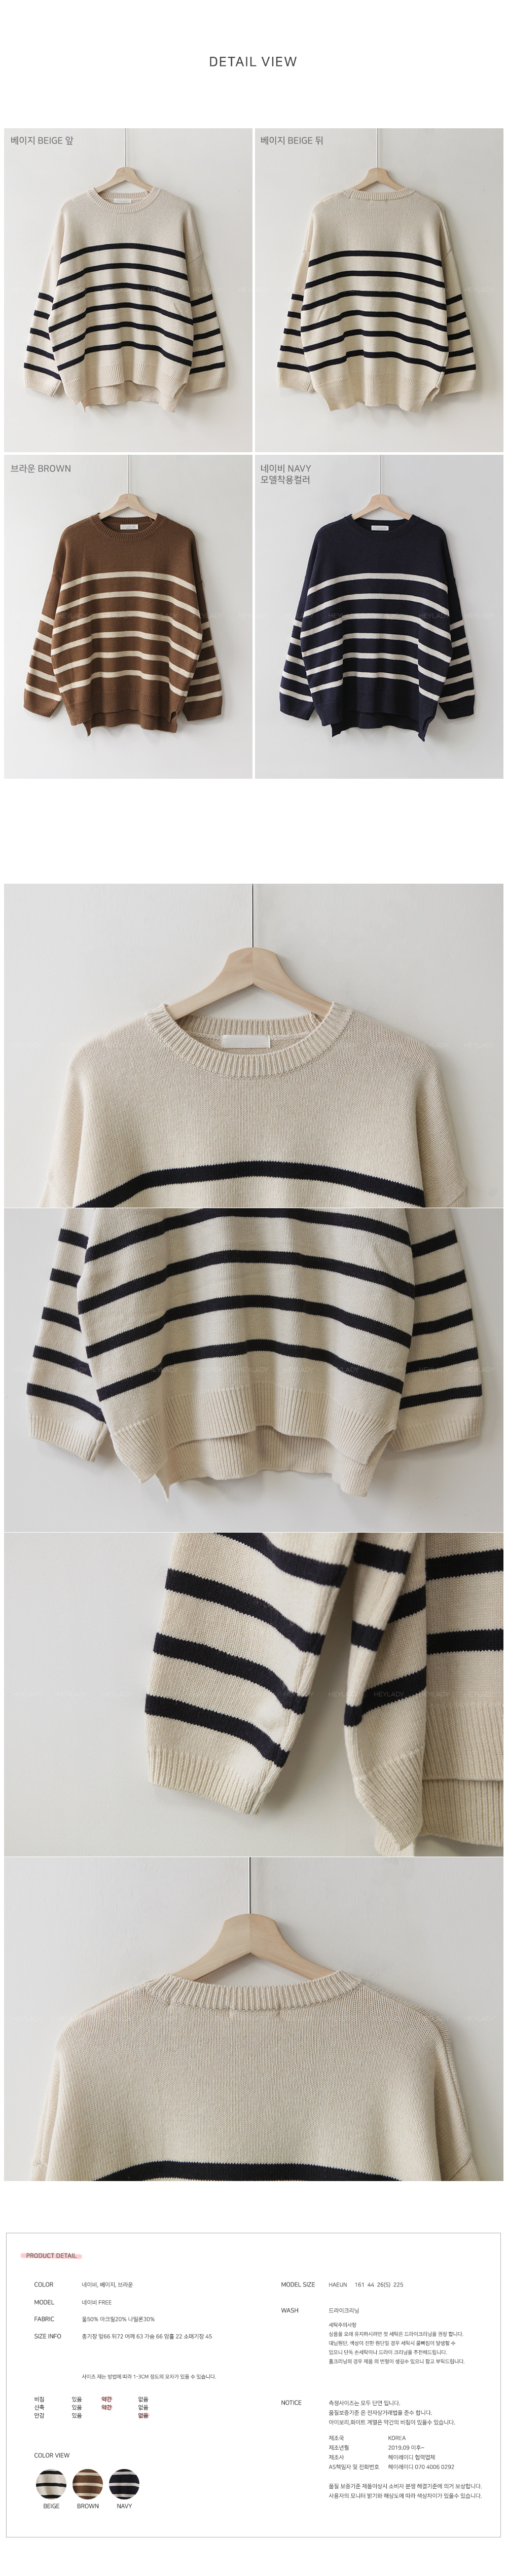 Zea Dangara wool knit